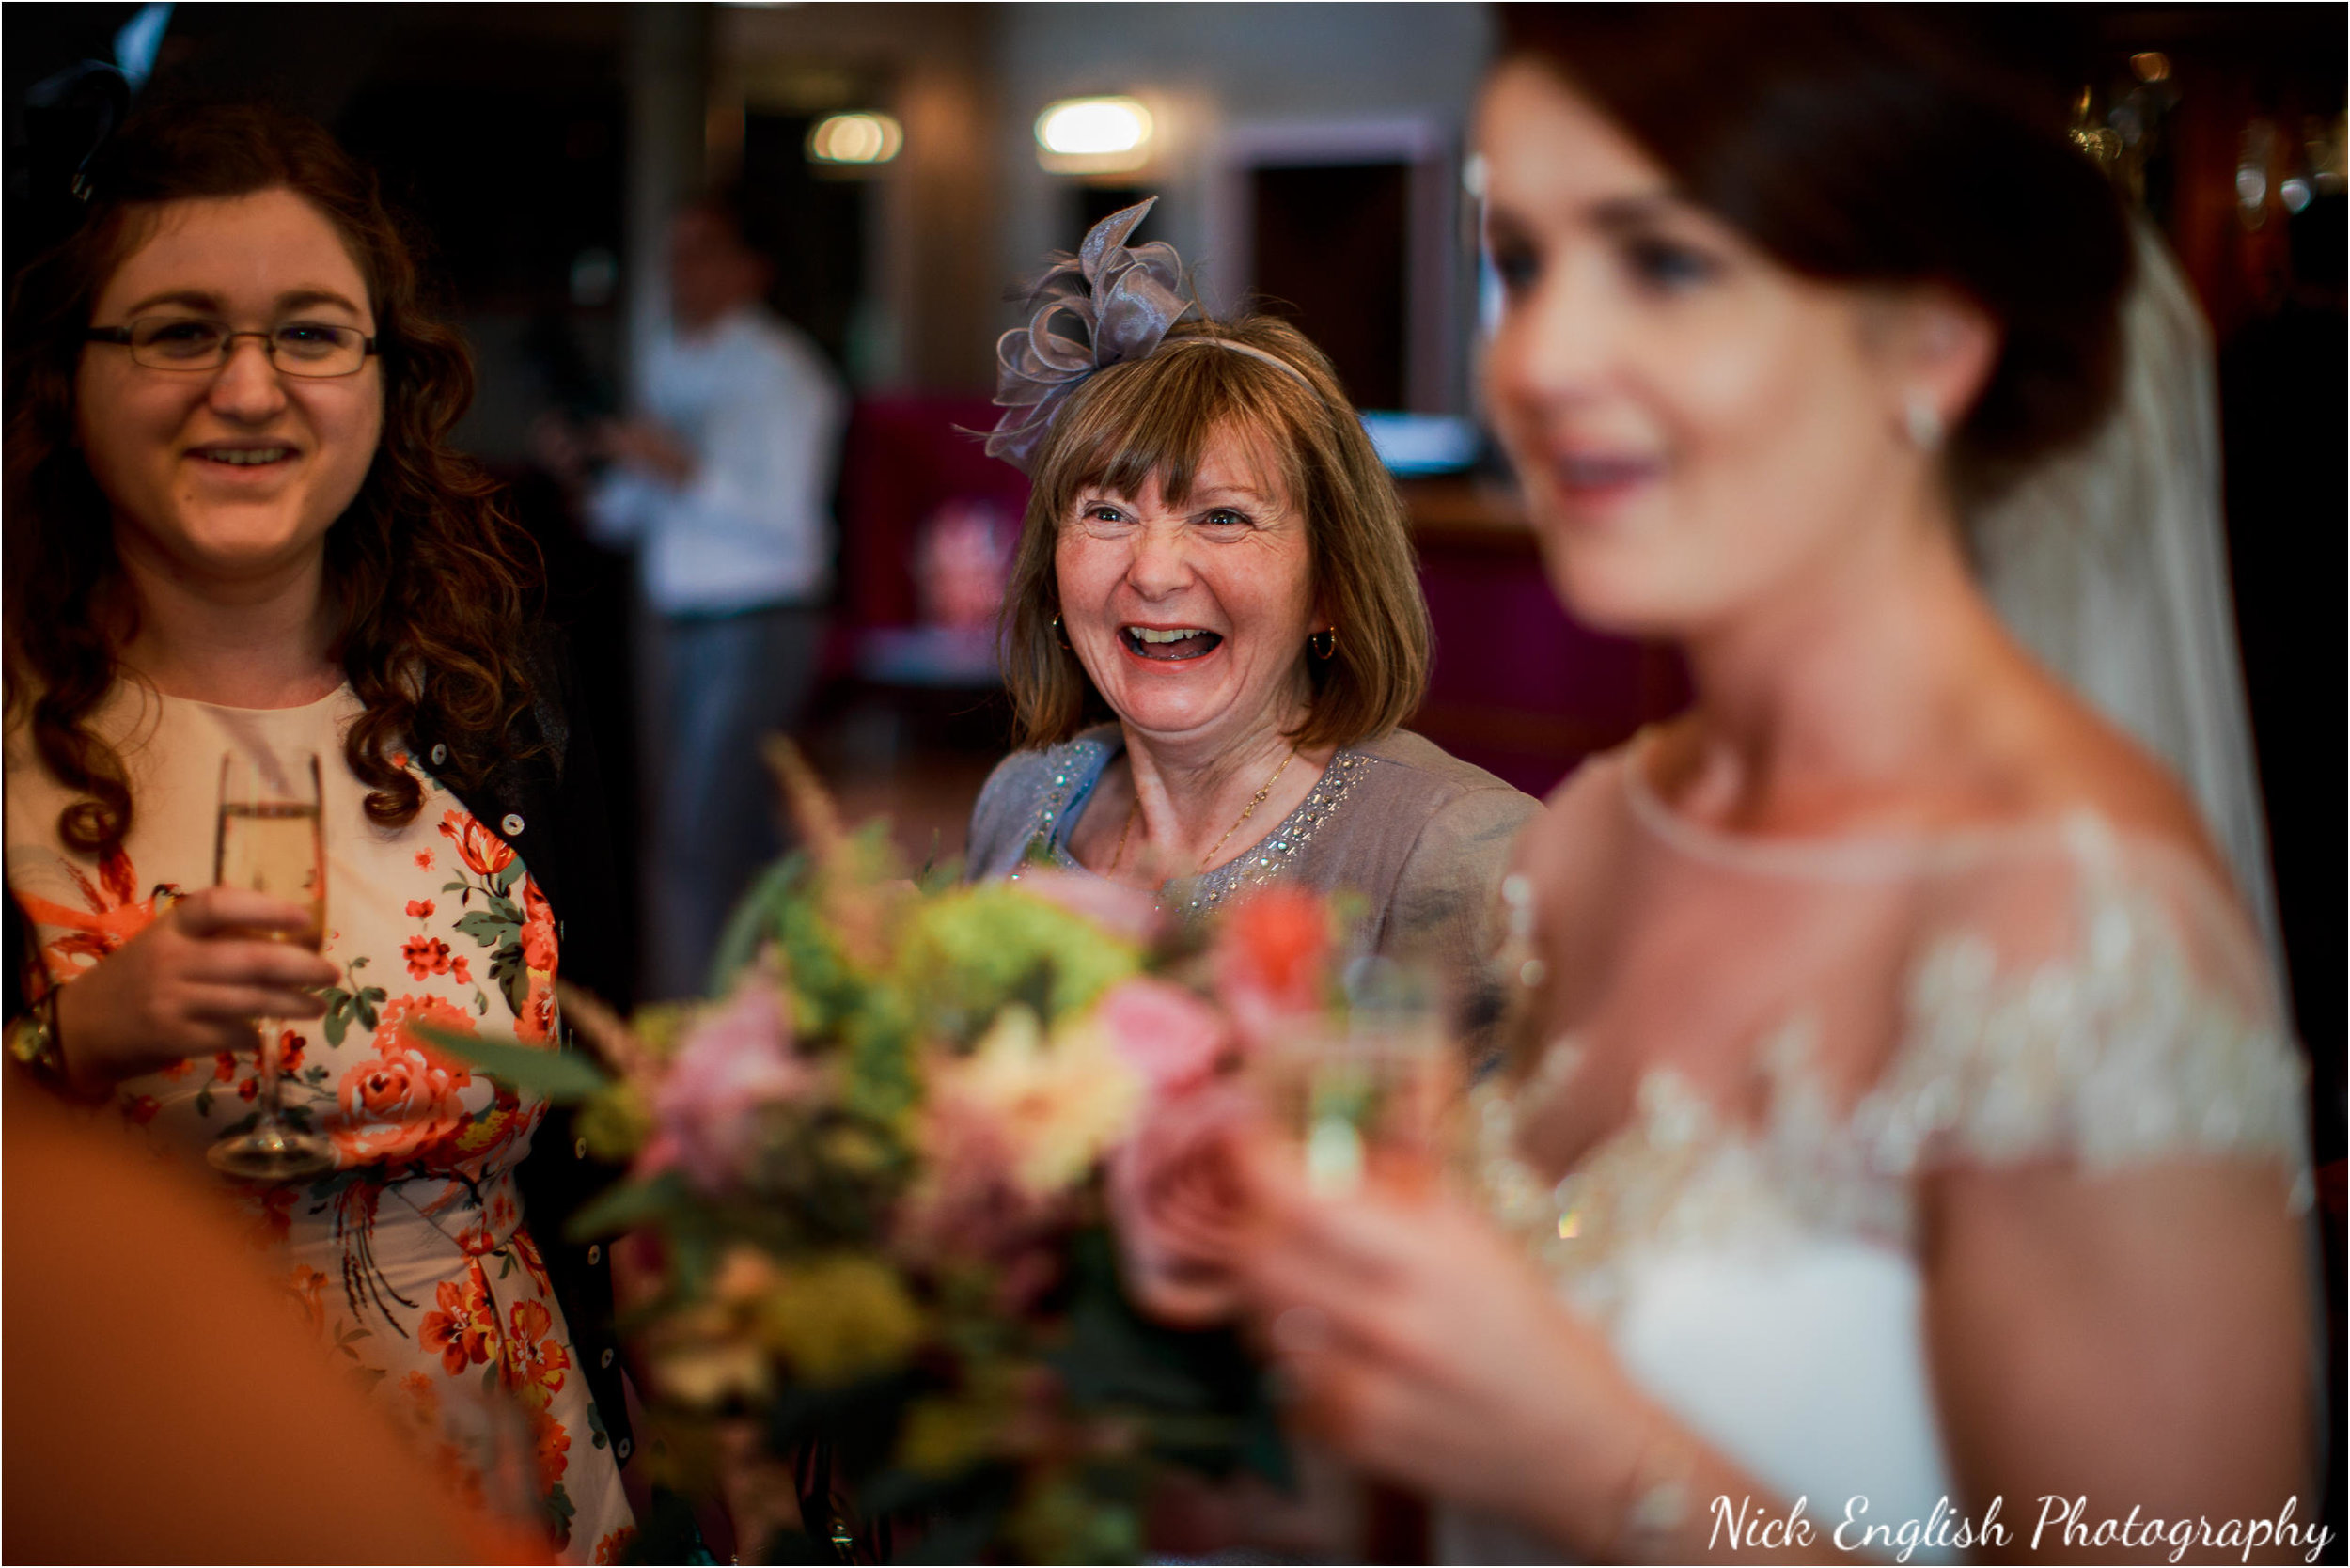 Stacey-Ash-Wedding-Photographs-Stanley-House-Preston-Lancashire-111.jpg